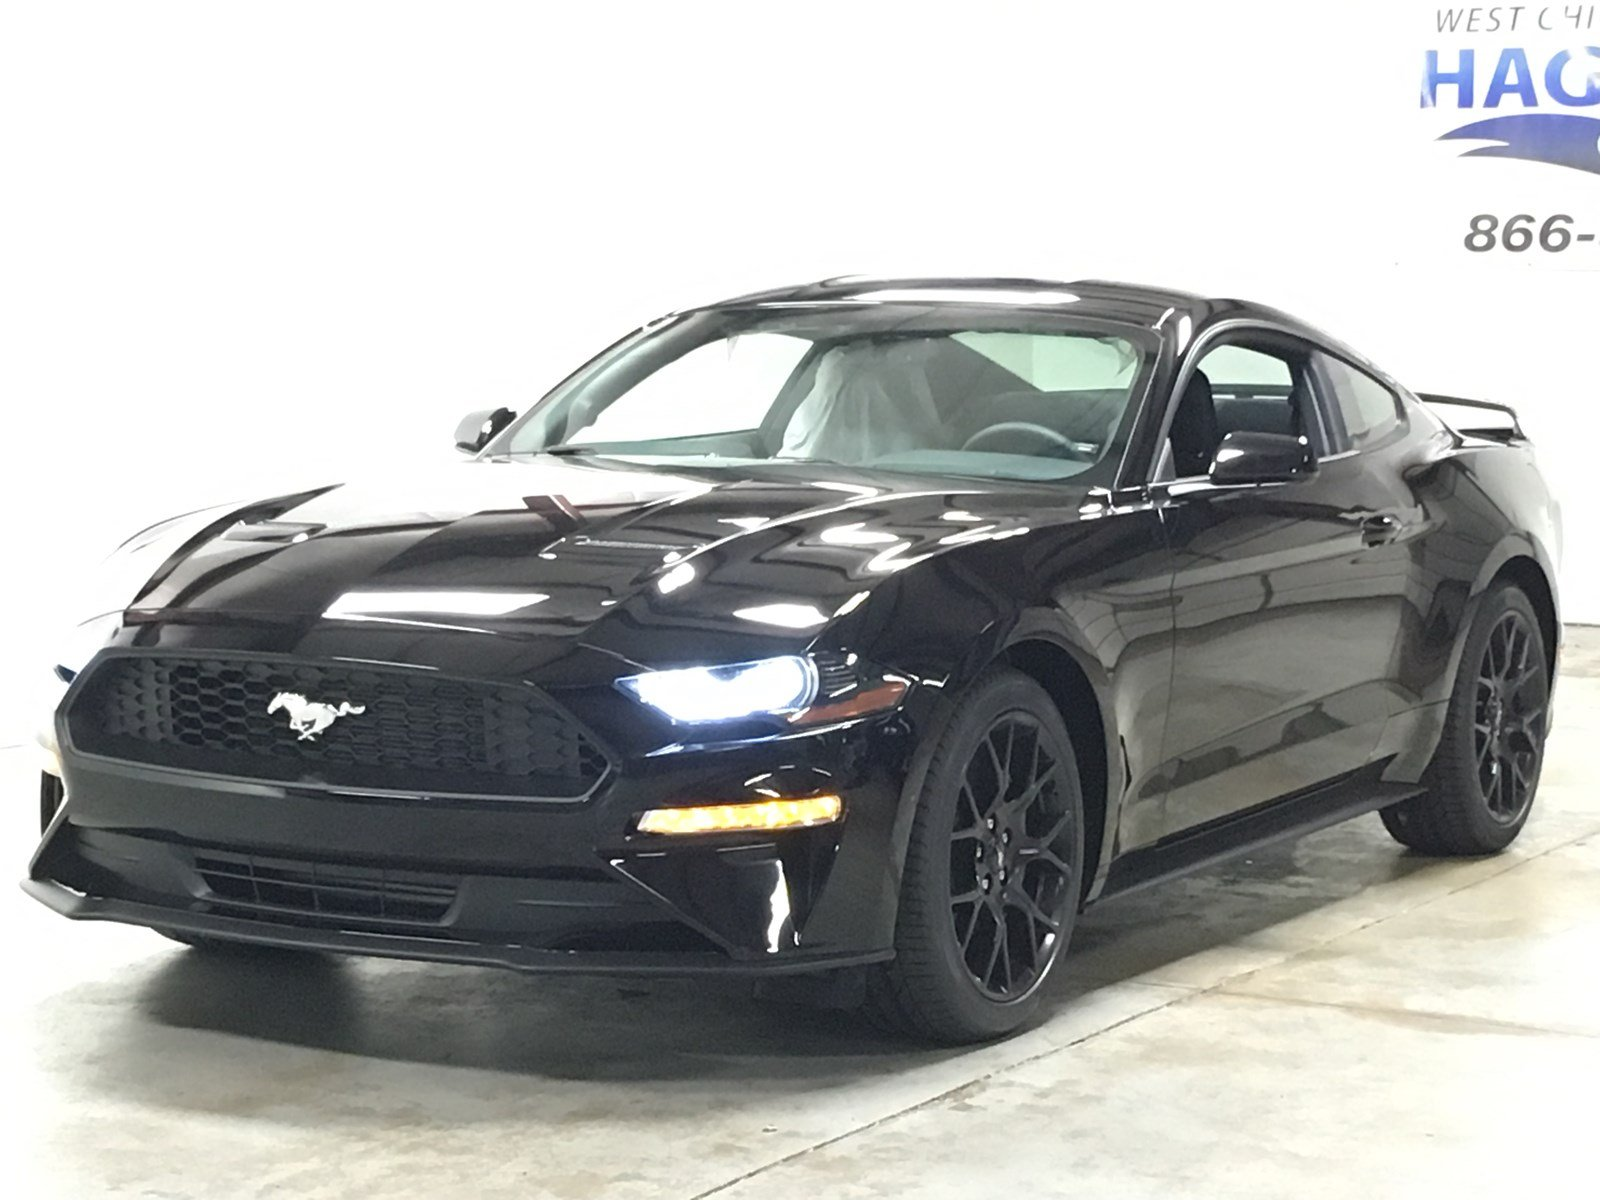 New 2018 Ford Mustang 2dr Car in West Chicago